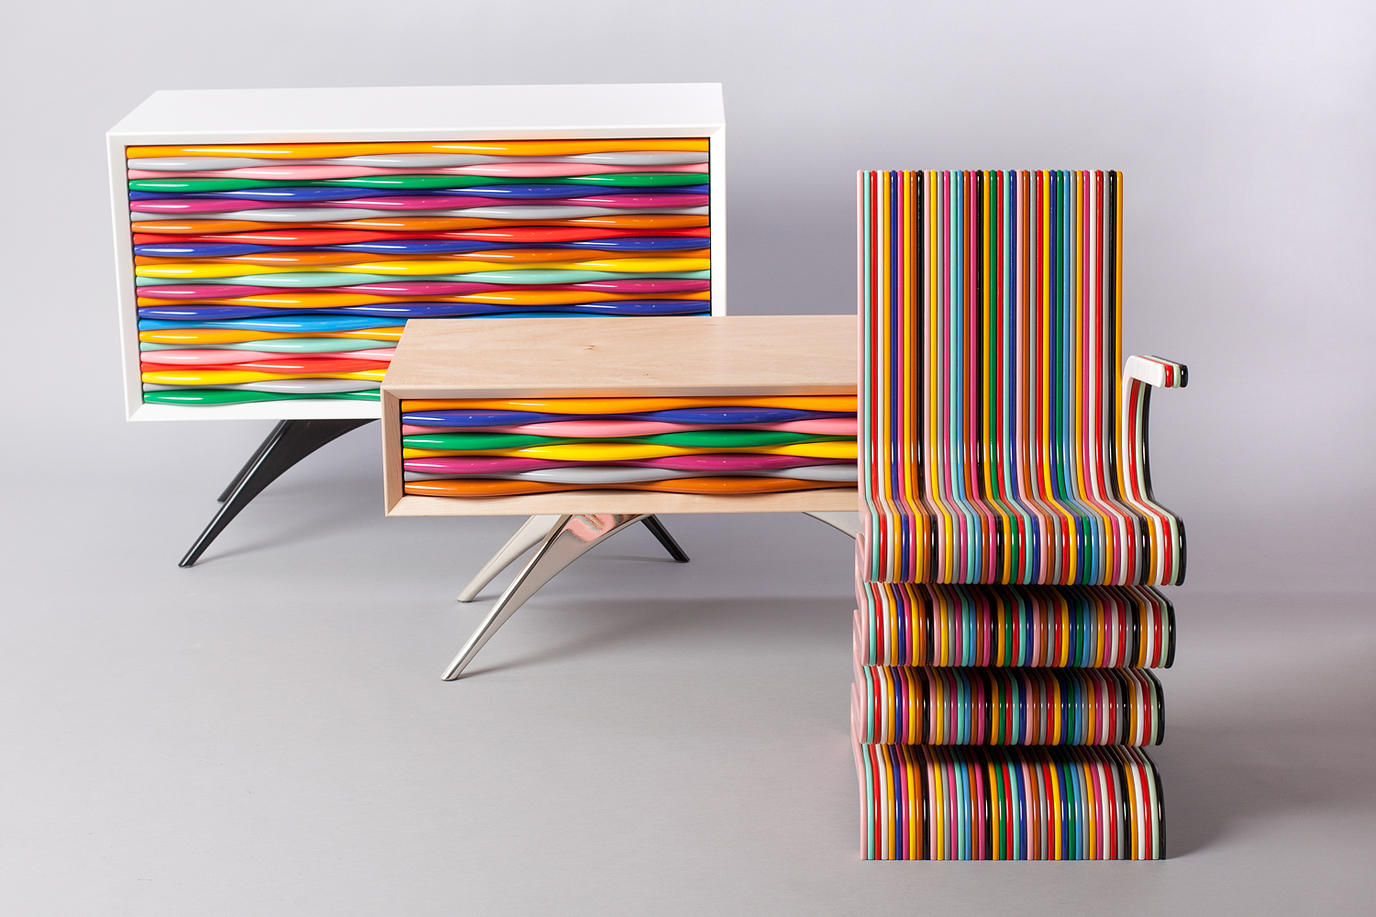 Design pop mobili multicolor di anthony hartley for Portfolio di design di mobili